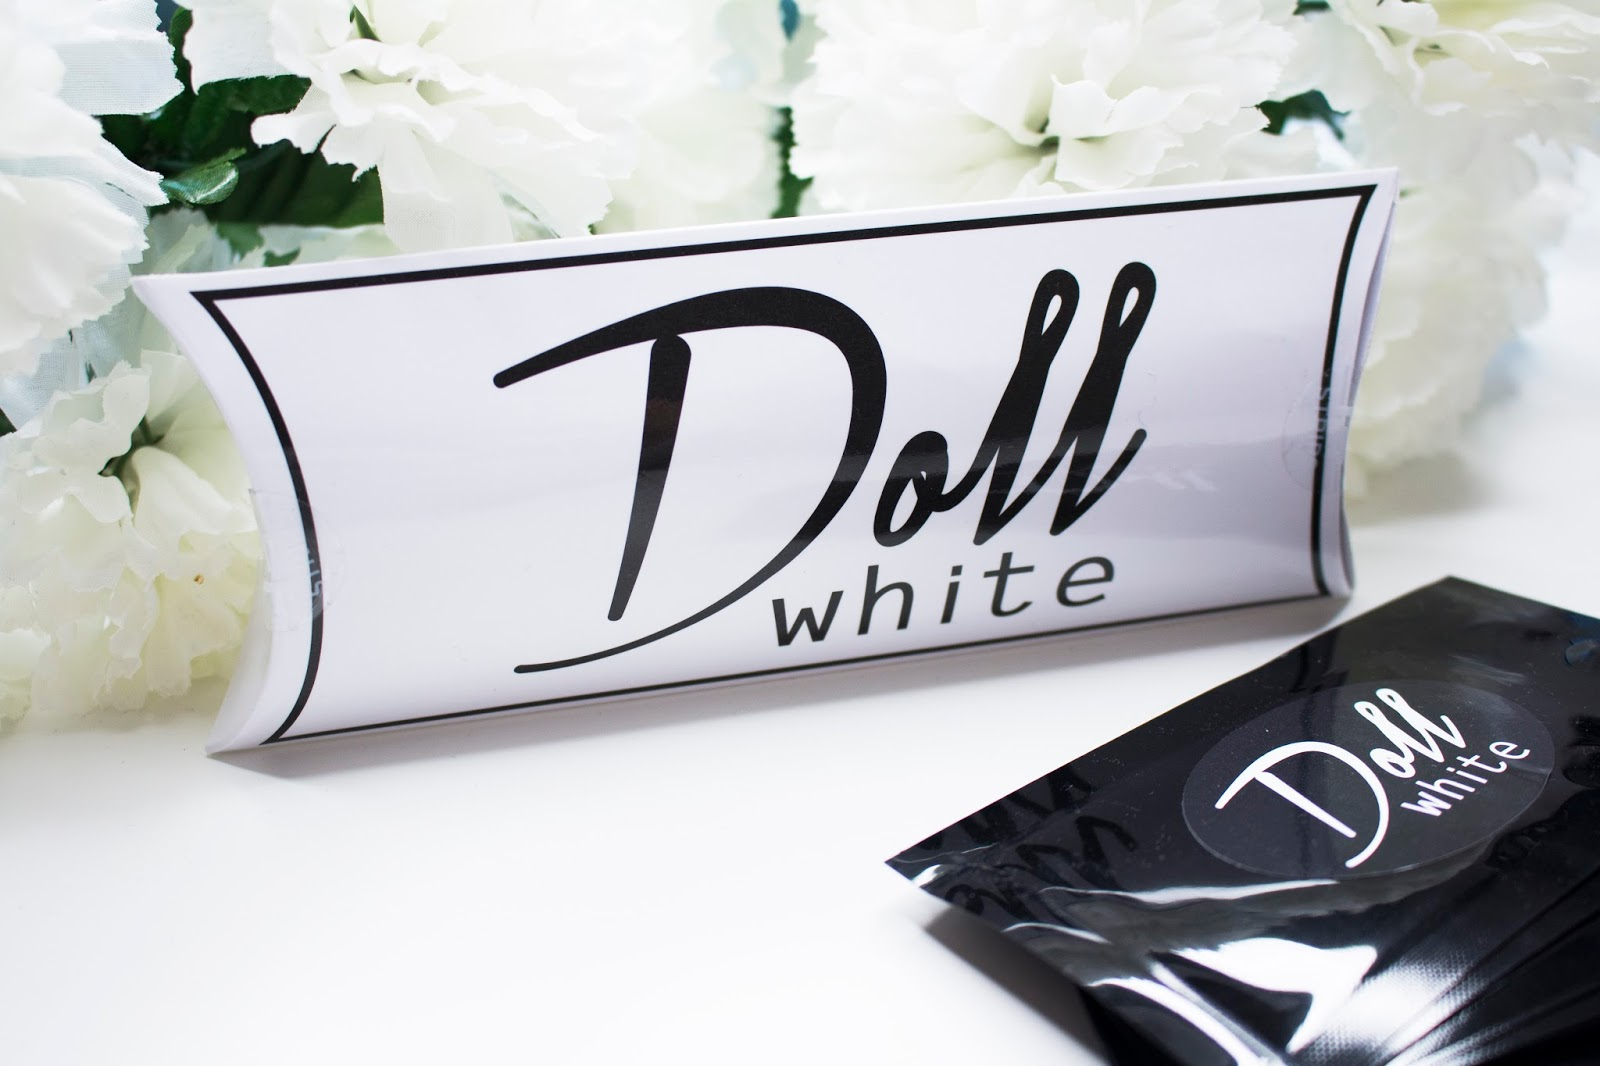 Teeth Whitening strips by Doll White